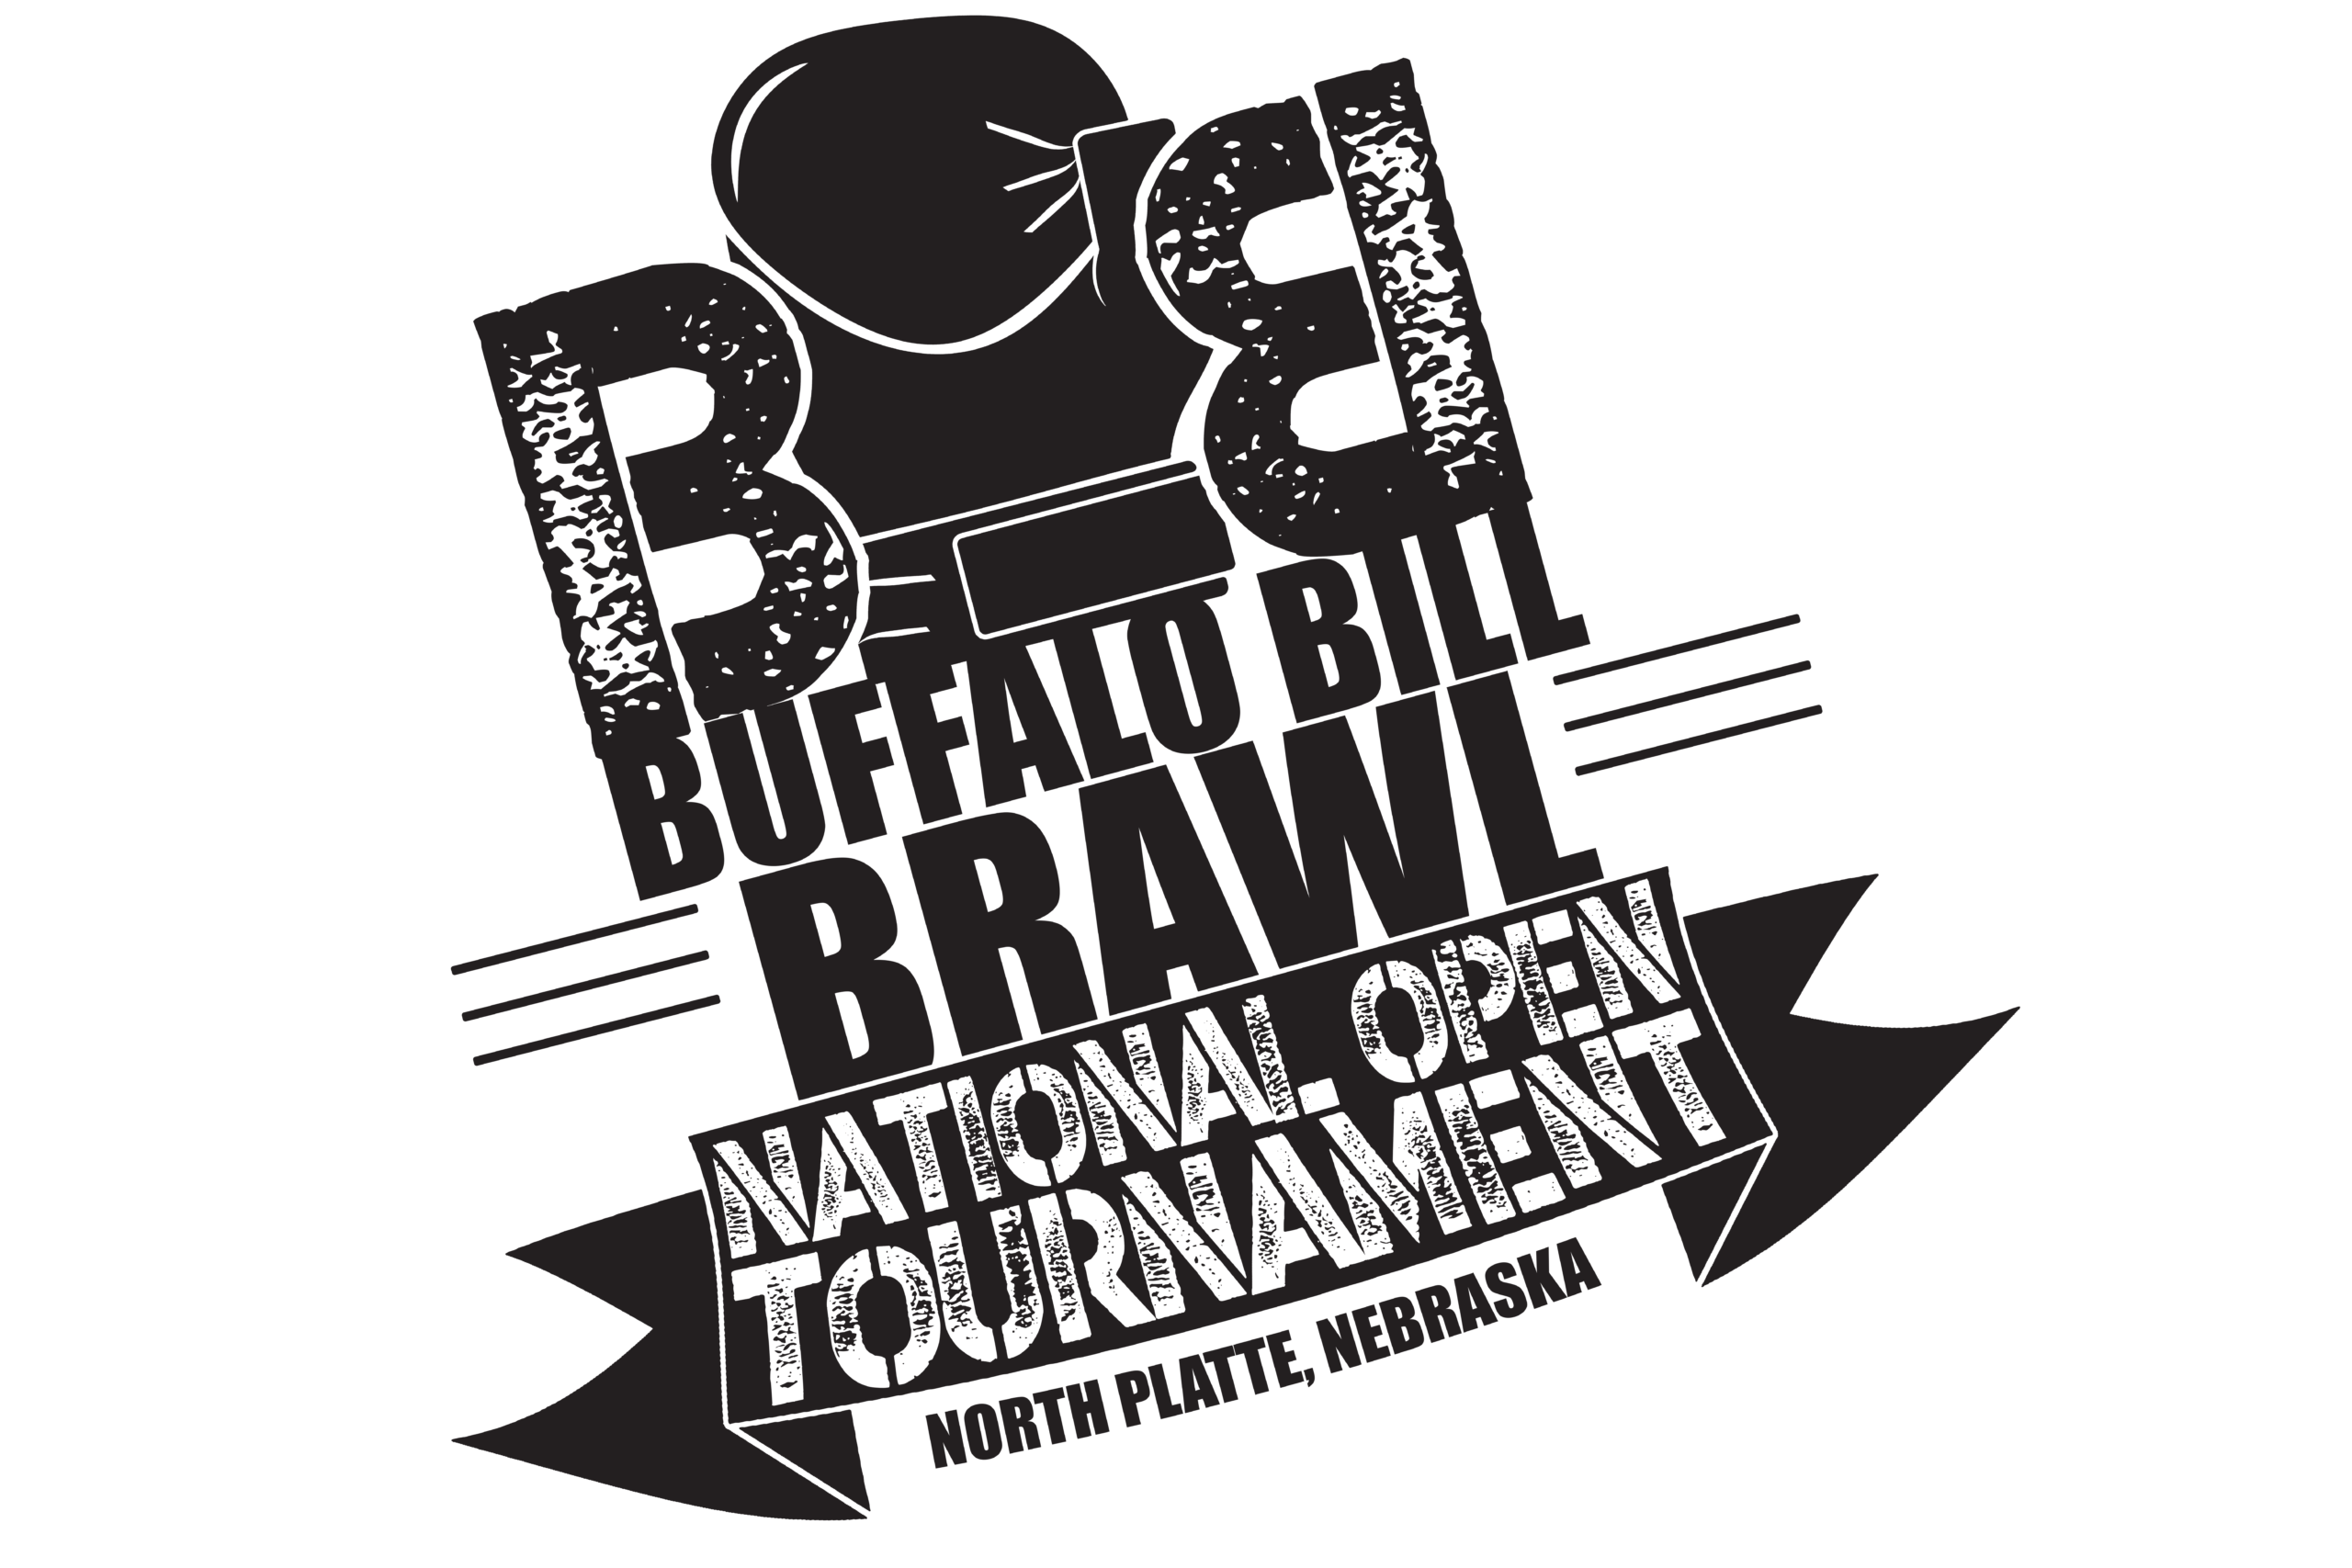 Bufallo Bill, Buffalo Bill Brawl, USA Boxing, North Platte Area Sports Commission, Boxing, Boxing Tournament, Tournament, 2020, Events, Sports, D&N Event Center, ring, ringside, bout, elite, north platte, ne, nebraska